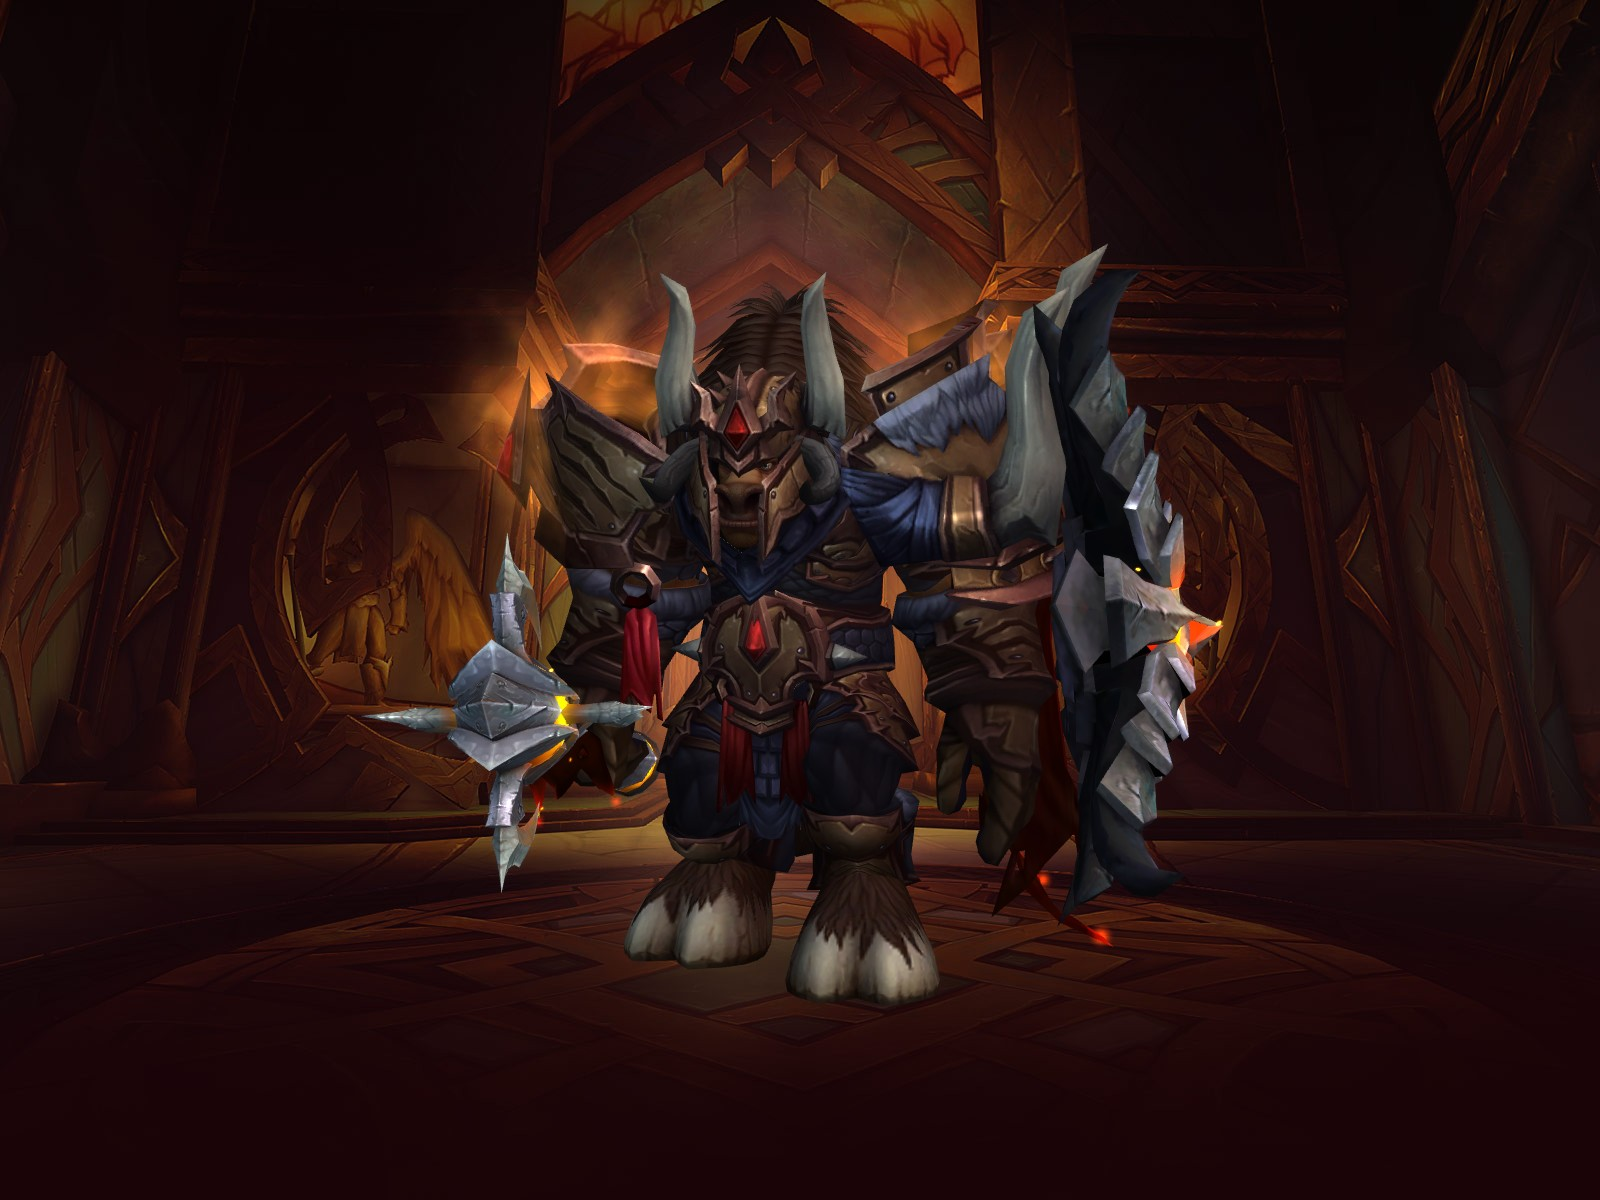 A] 8/9M, Warrior Tank looking for Guild - WoW Classic Guild